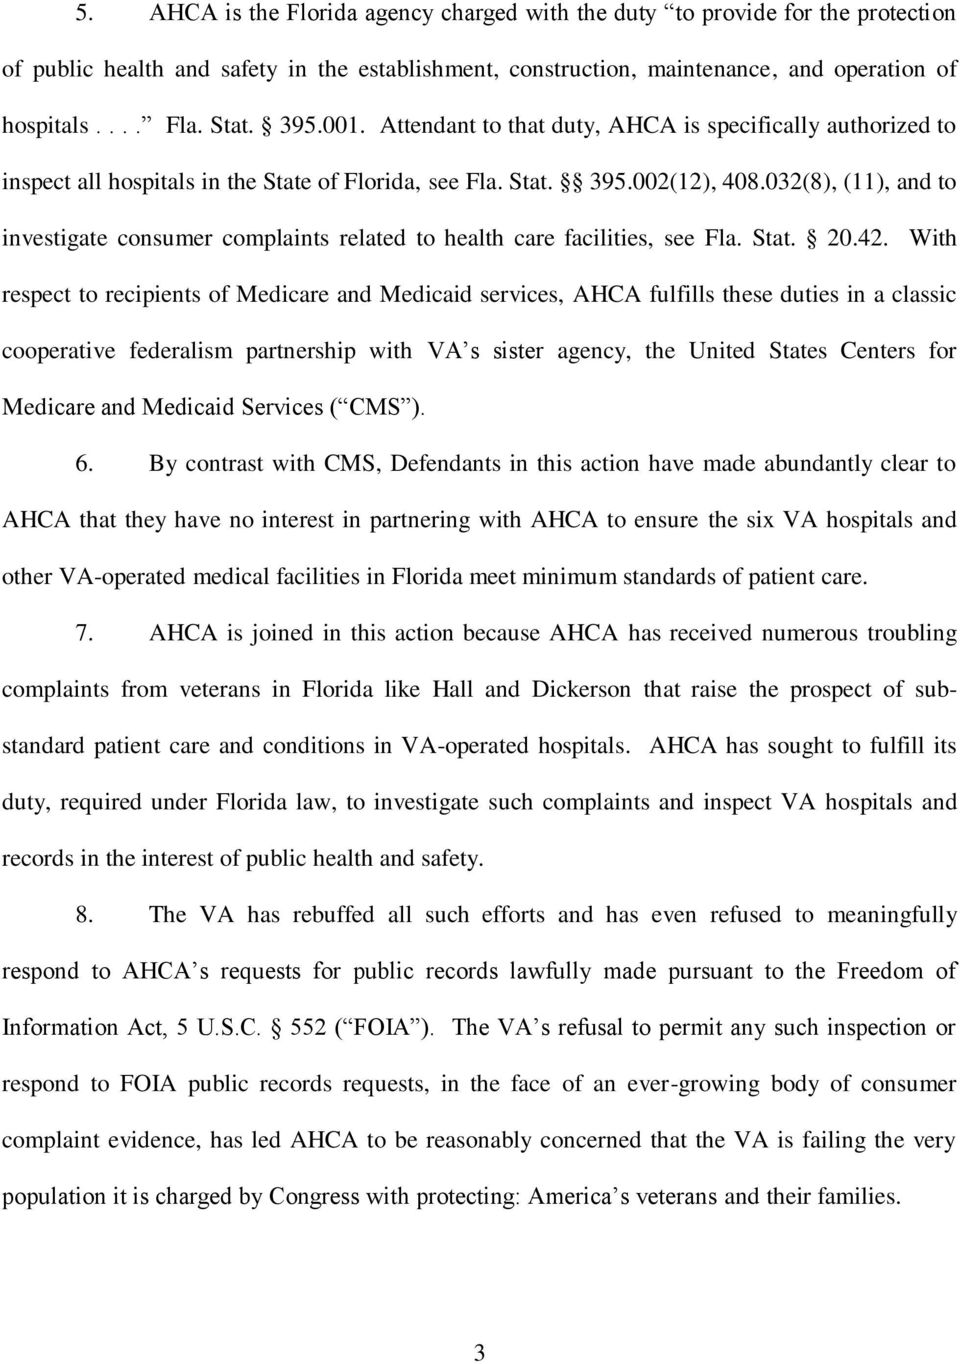 032(8), (11), and to investigate consumer complaints related to health care facilities, see Fla. Stat. 20.42.